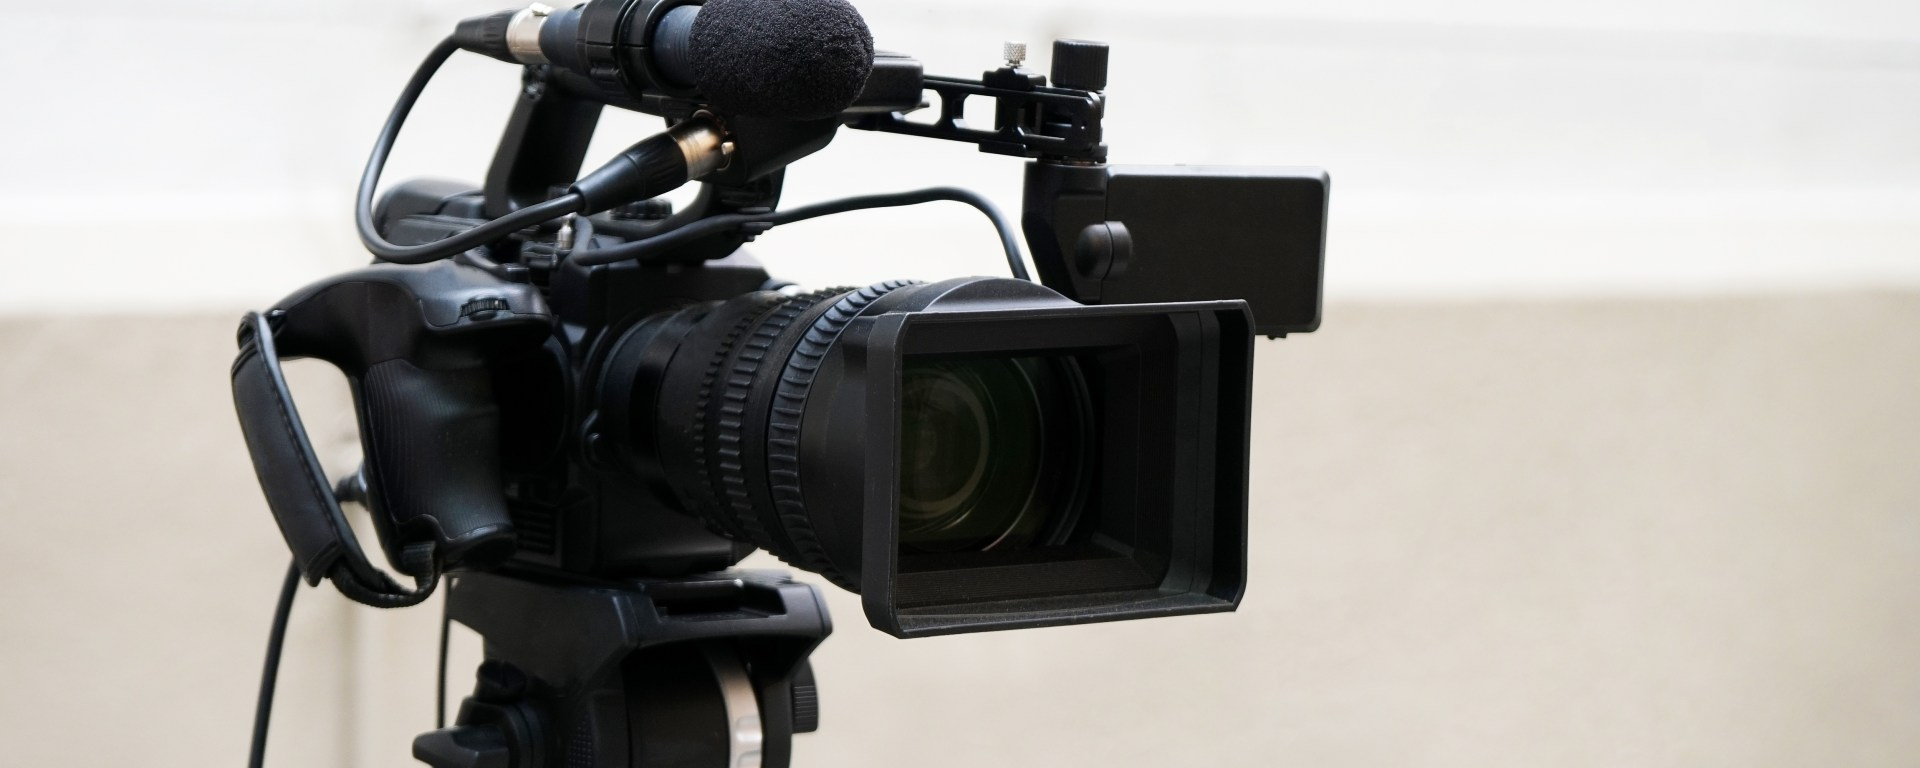 professional digital video or movie camera with microphone on tripod